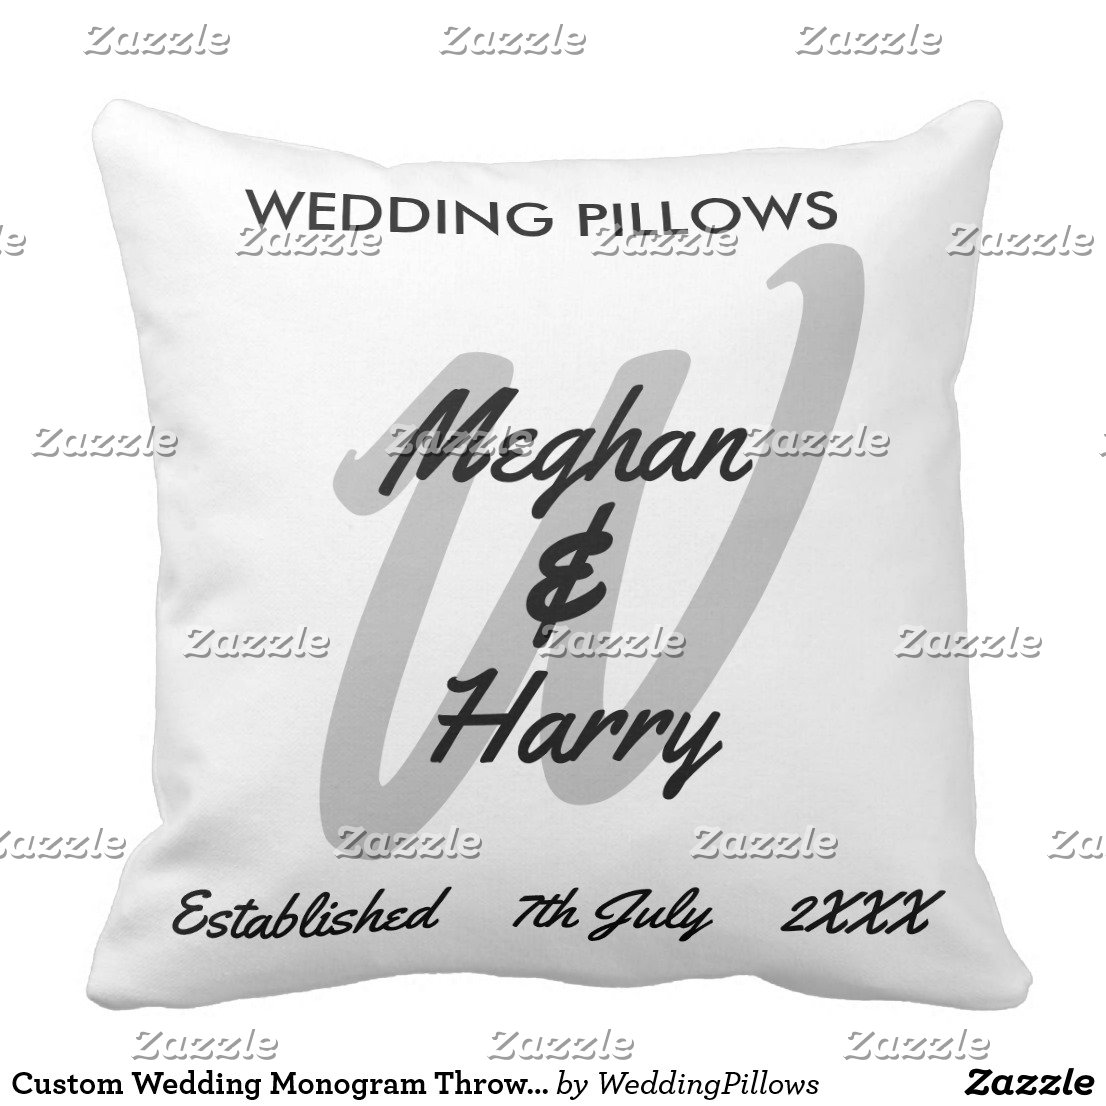 Bride & Groom Monogram Throw Pillows